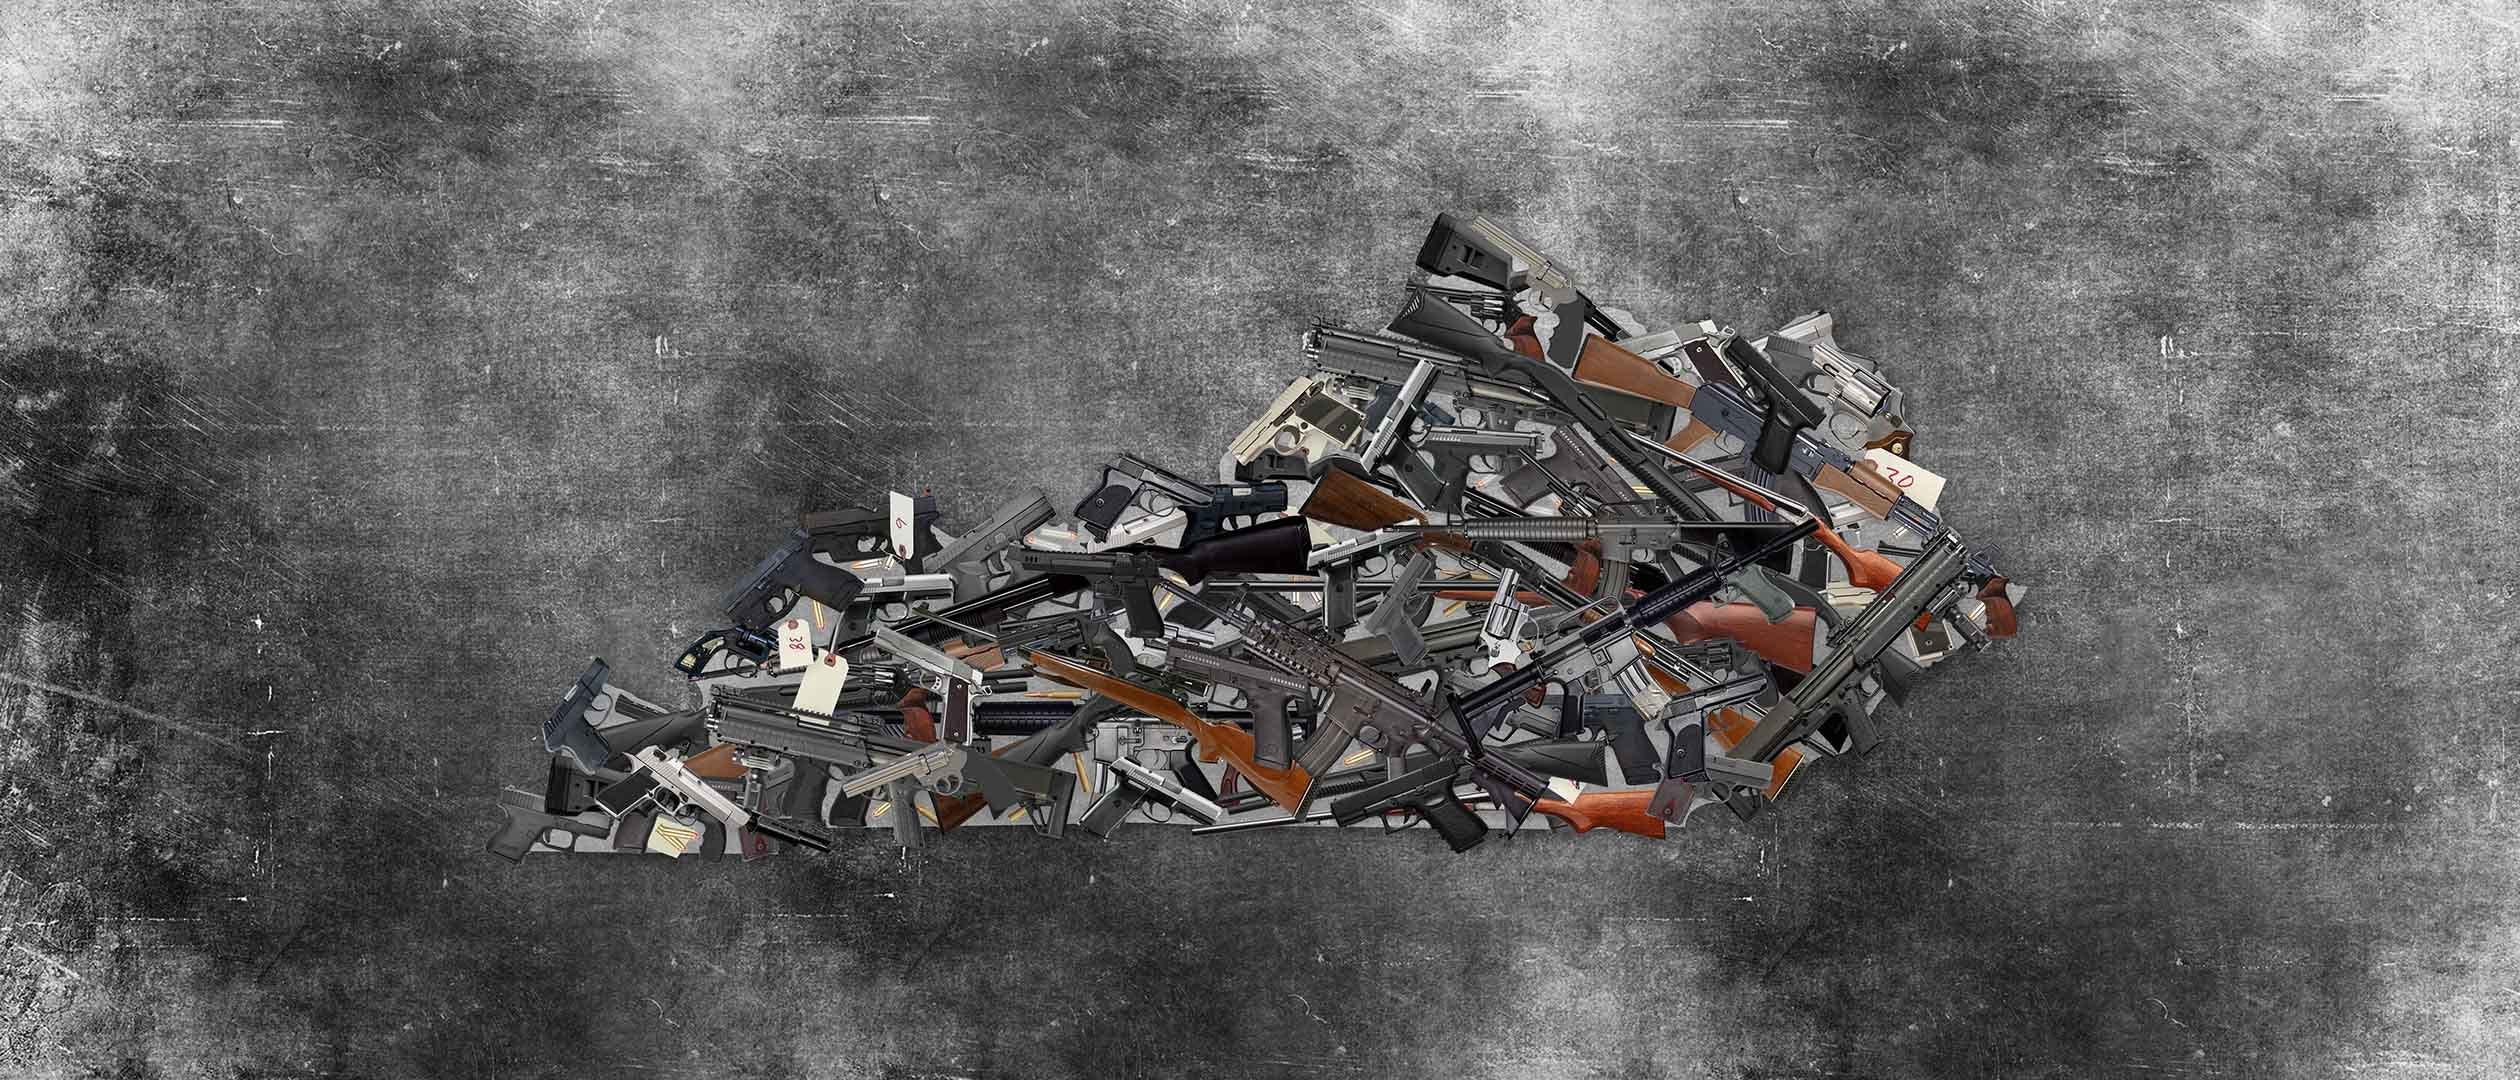 It s real easy to get a gun : How ample access, lax laws pushed a city s gun violence to new heights